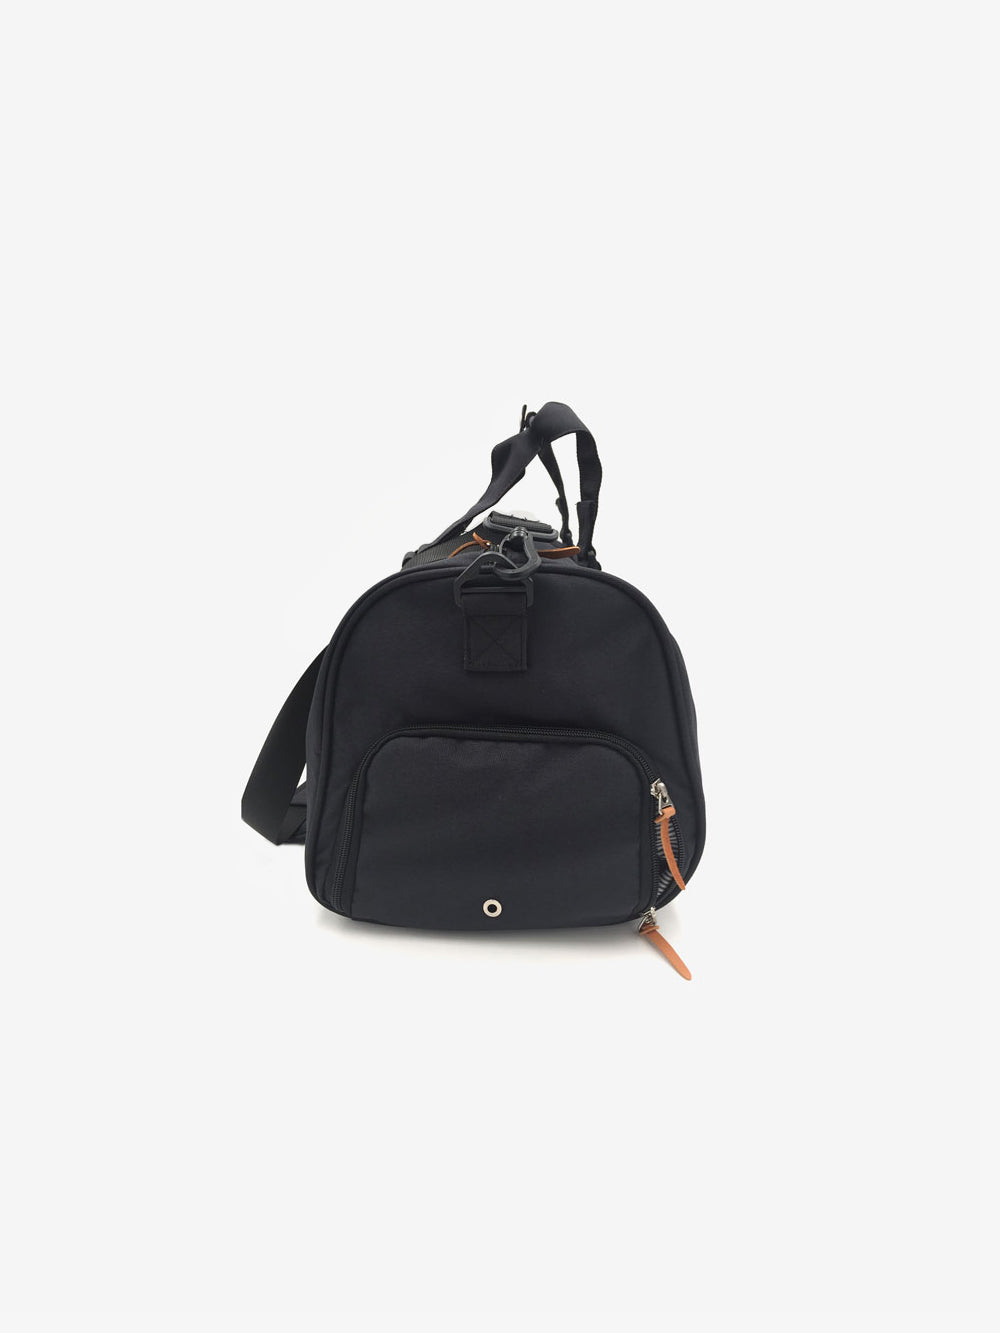 Leisure Bag in Black